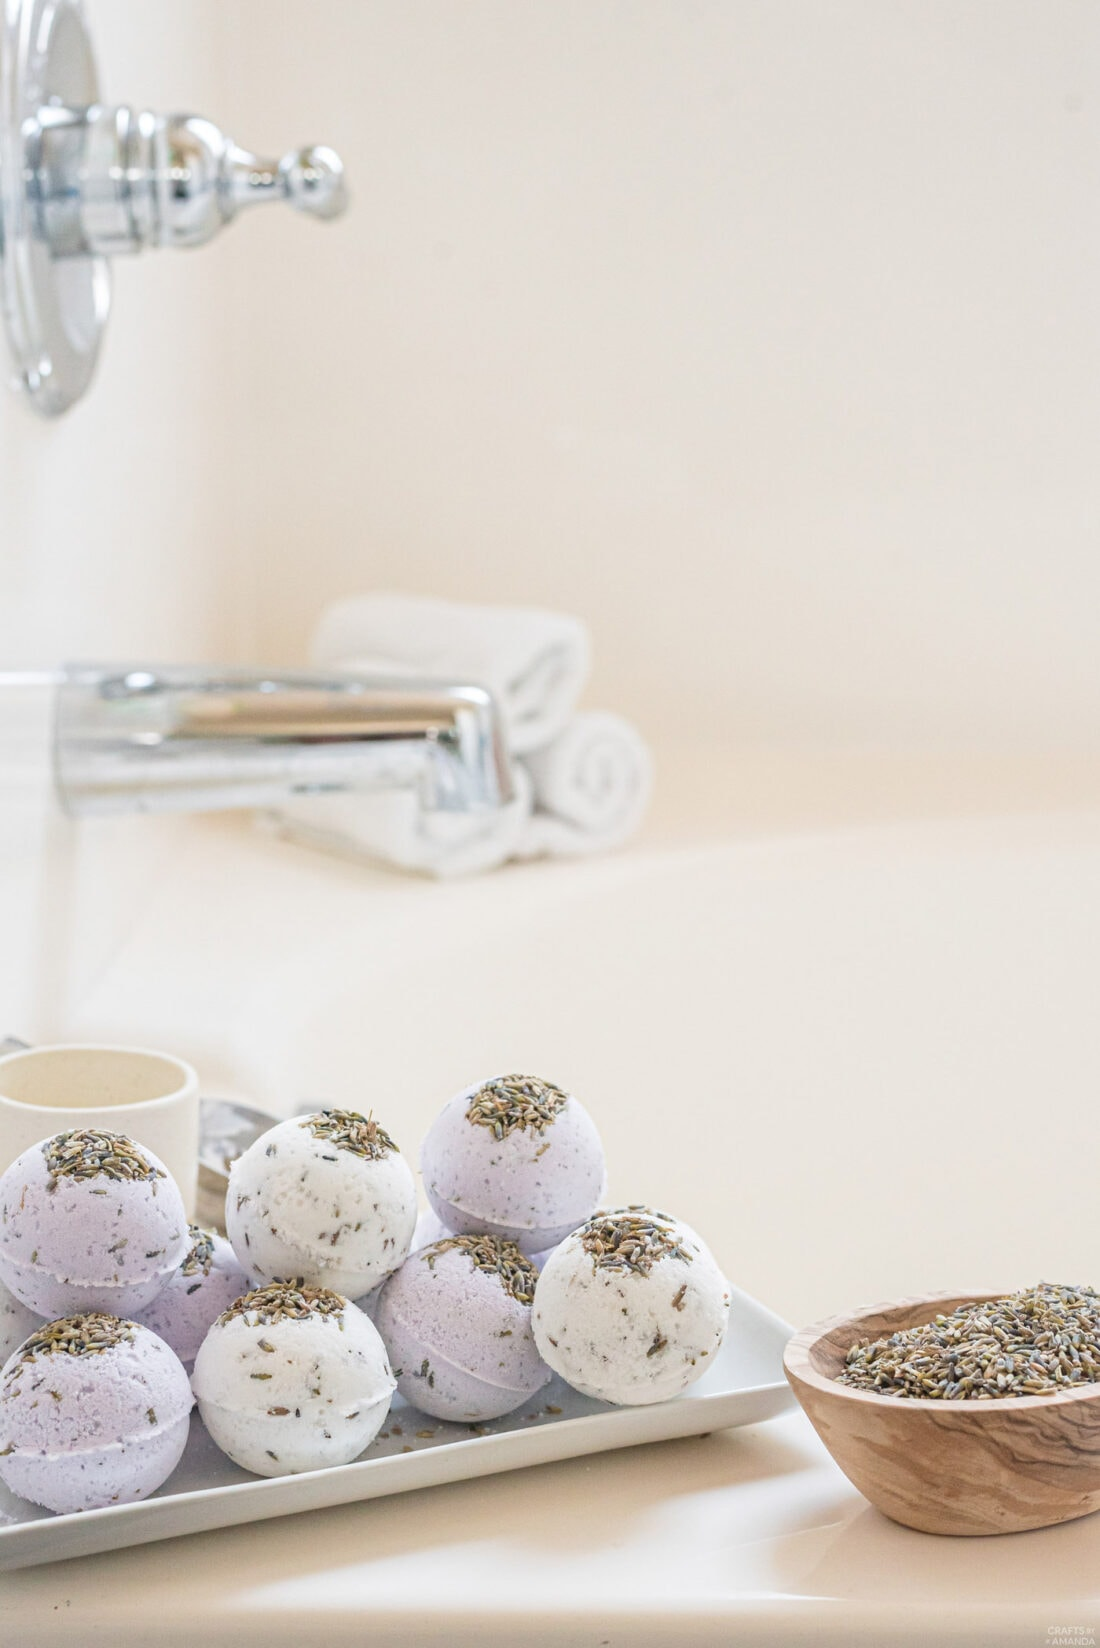 lavender bath bombs on tray by bathtub